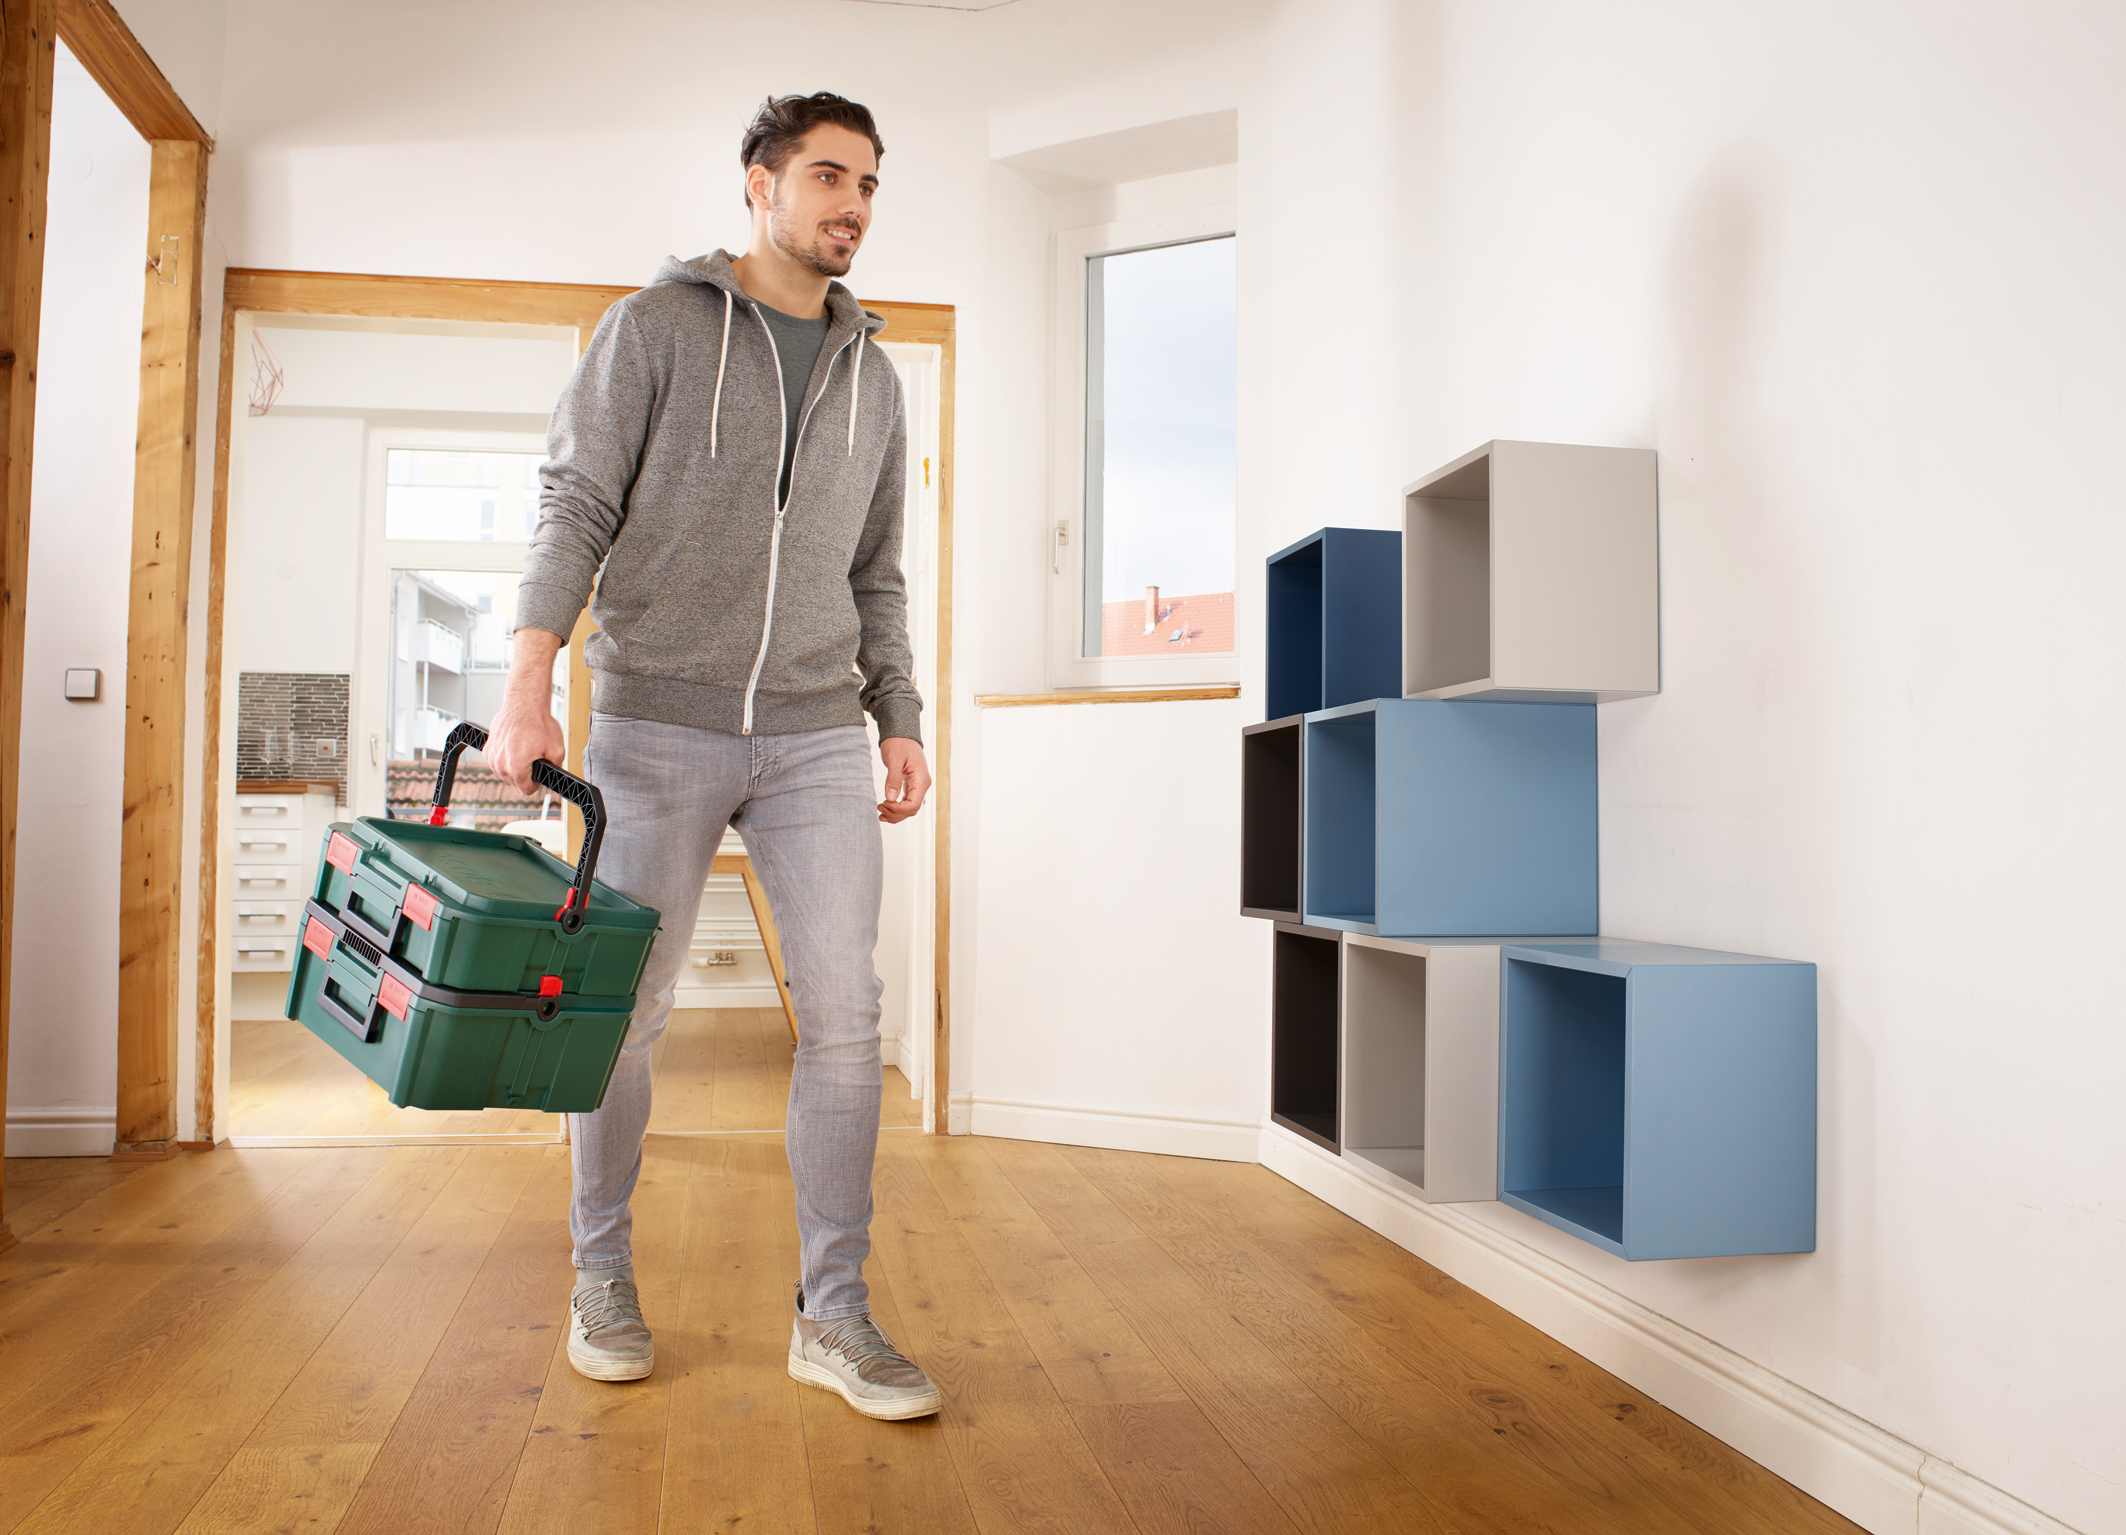 Easy transport when connected due to a horizontal and a vertical handle: Bosch SystemBox product range for even better organization in a hobby cellar or a garage